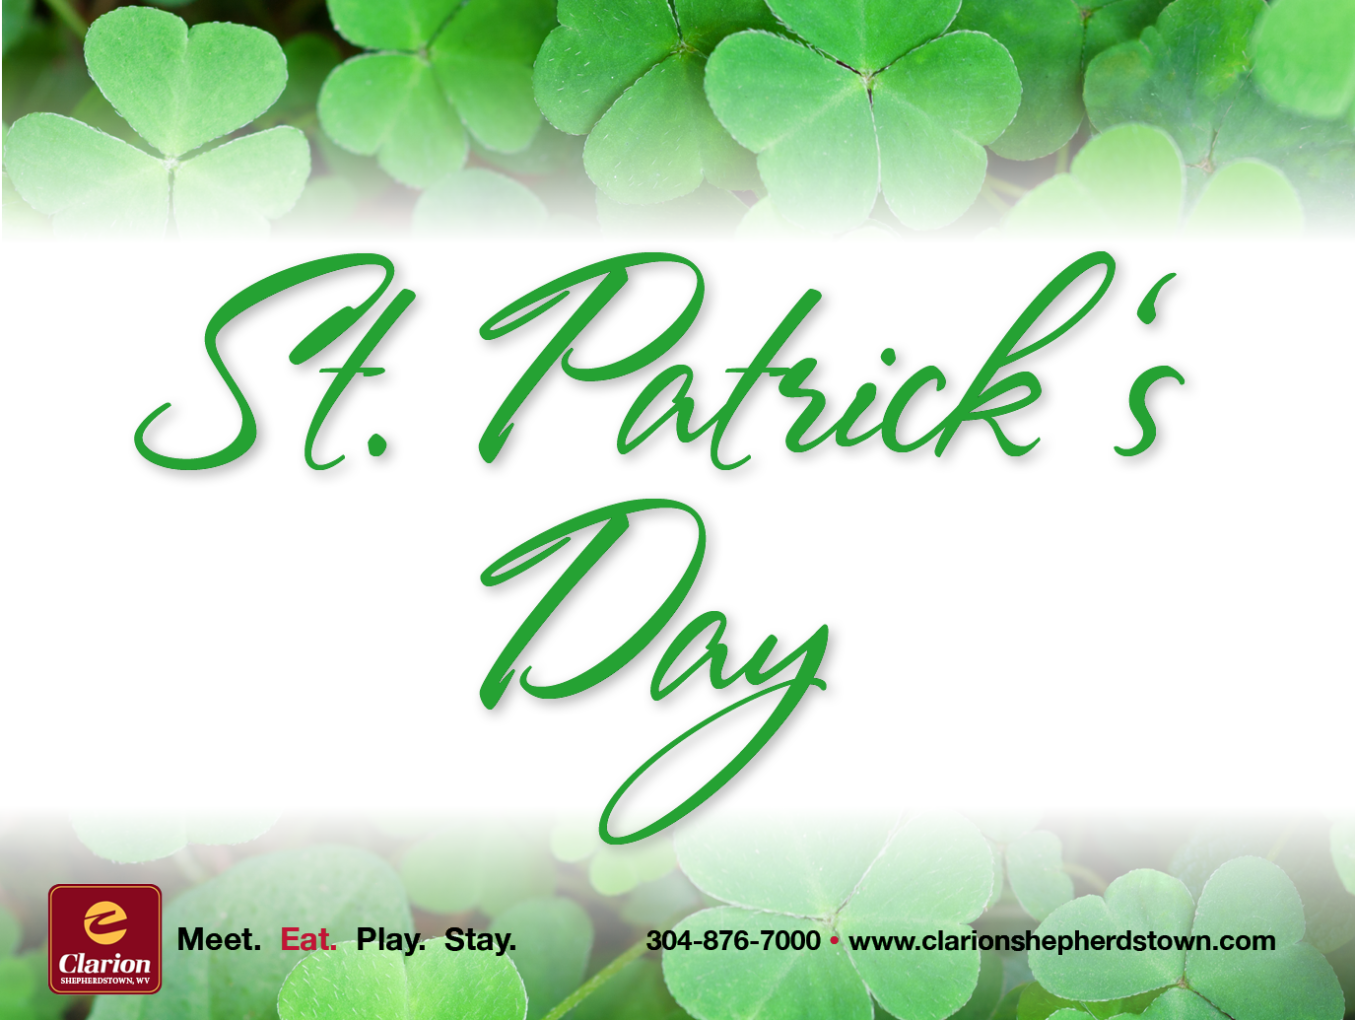 St. Patricks Day  Specials March 17